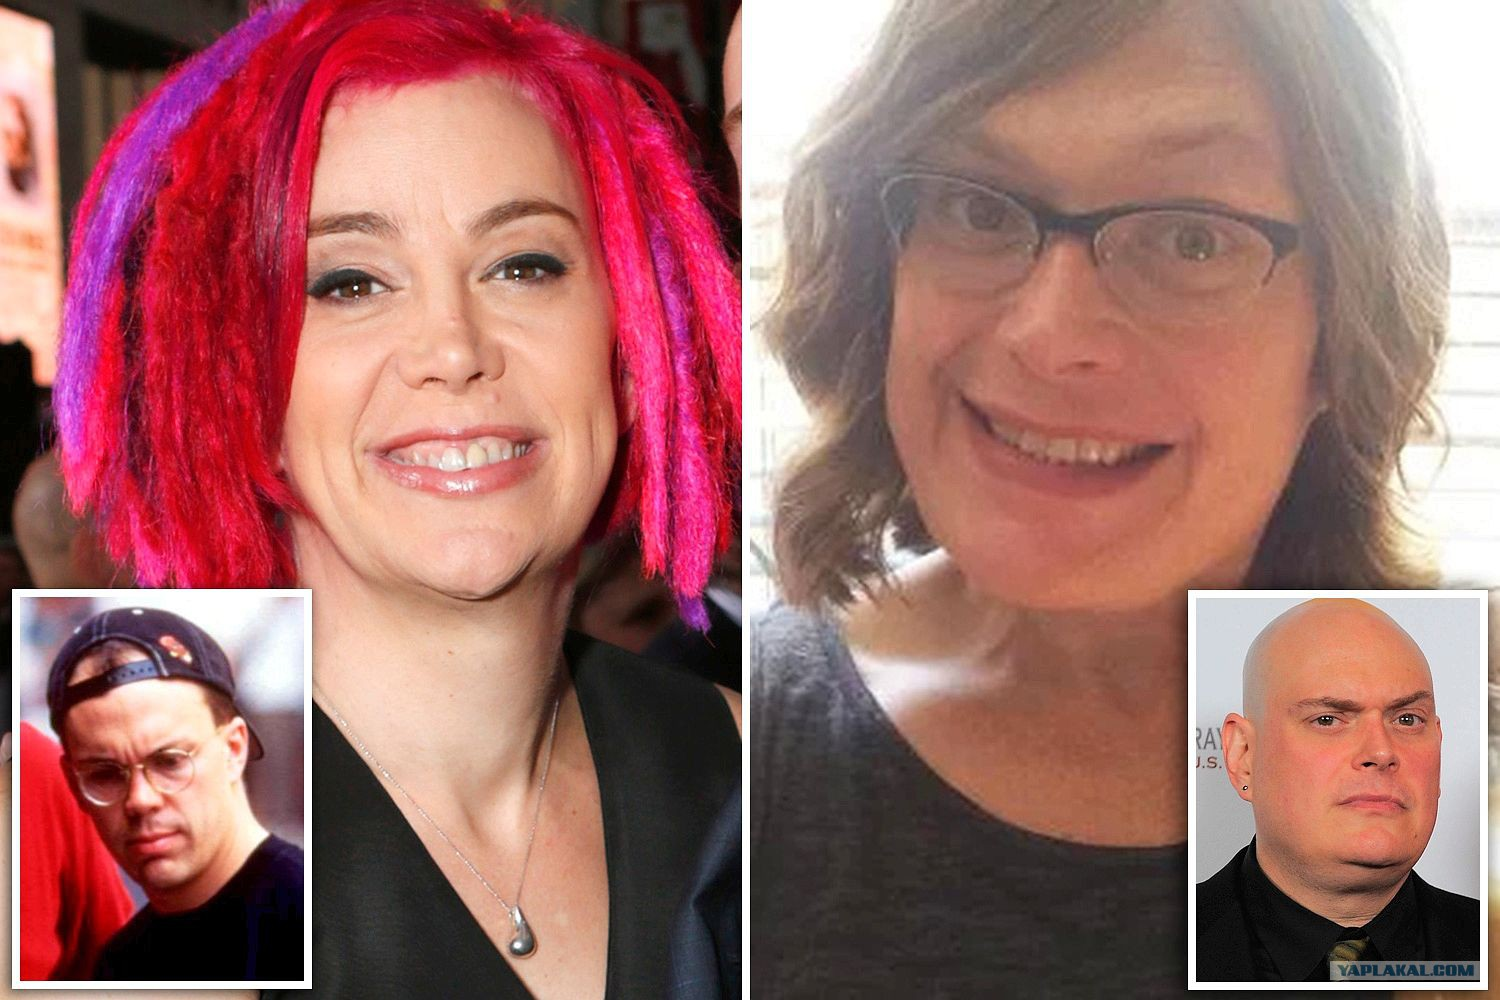 Andy wachowski comes out as transgender four years after sibling does same